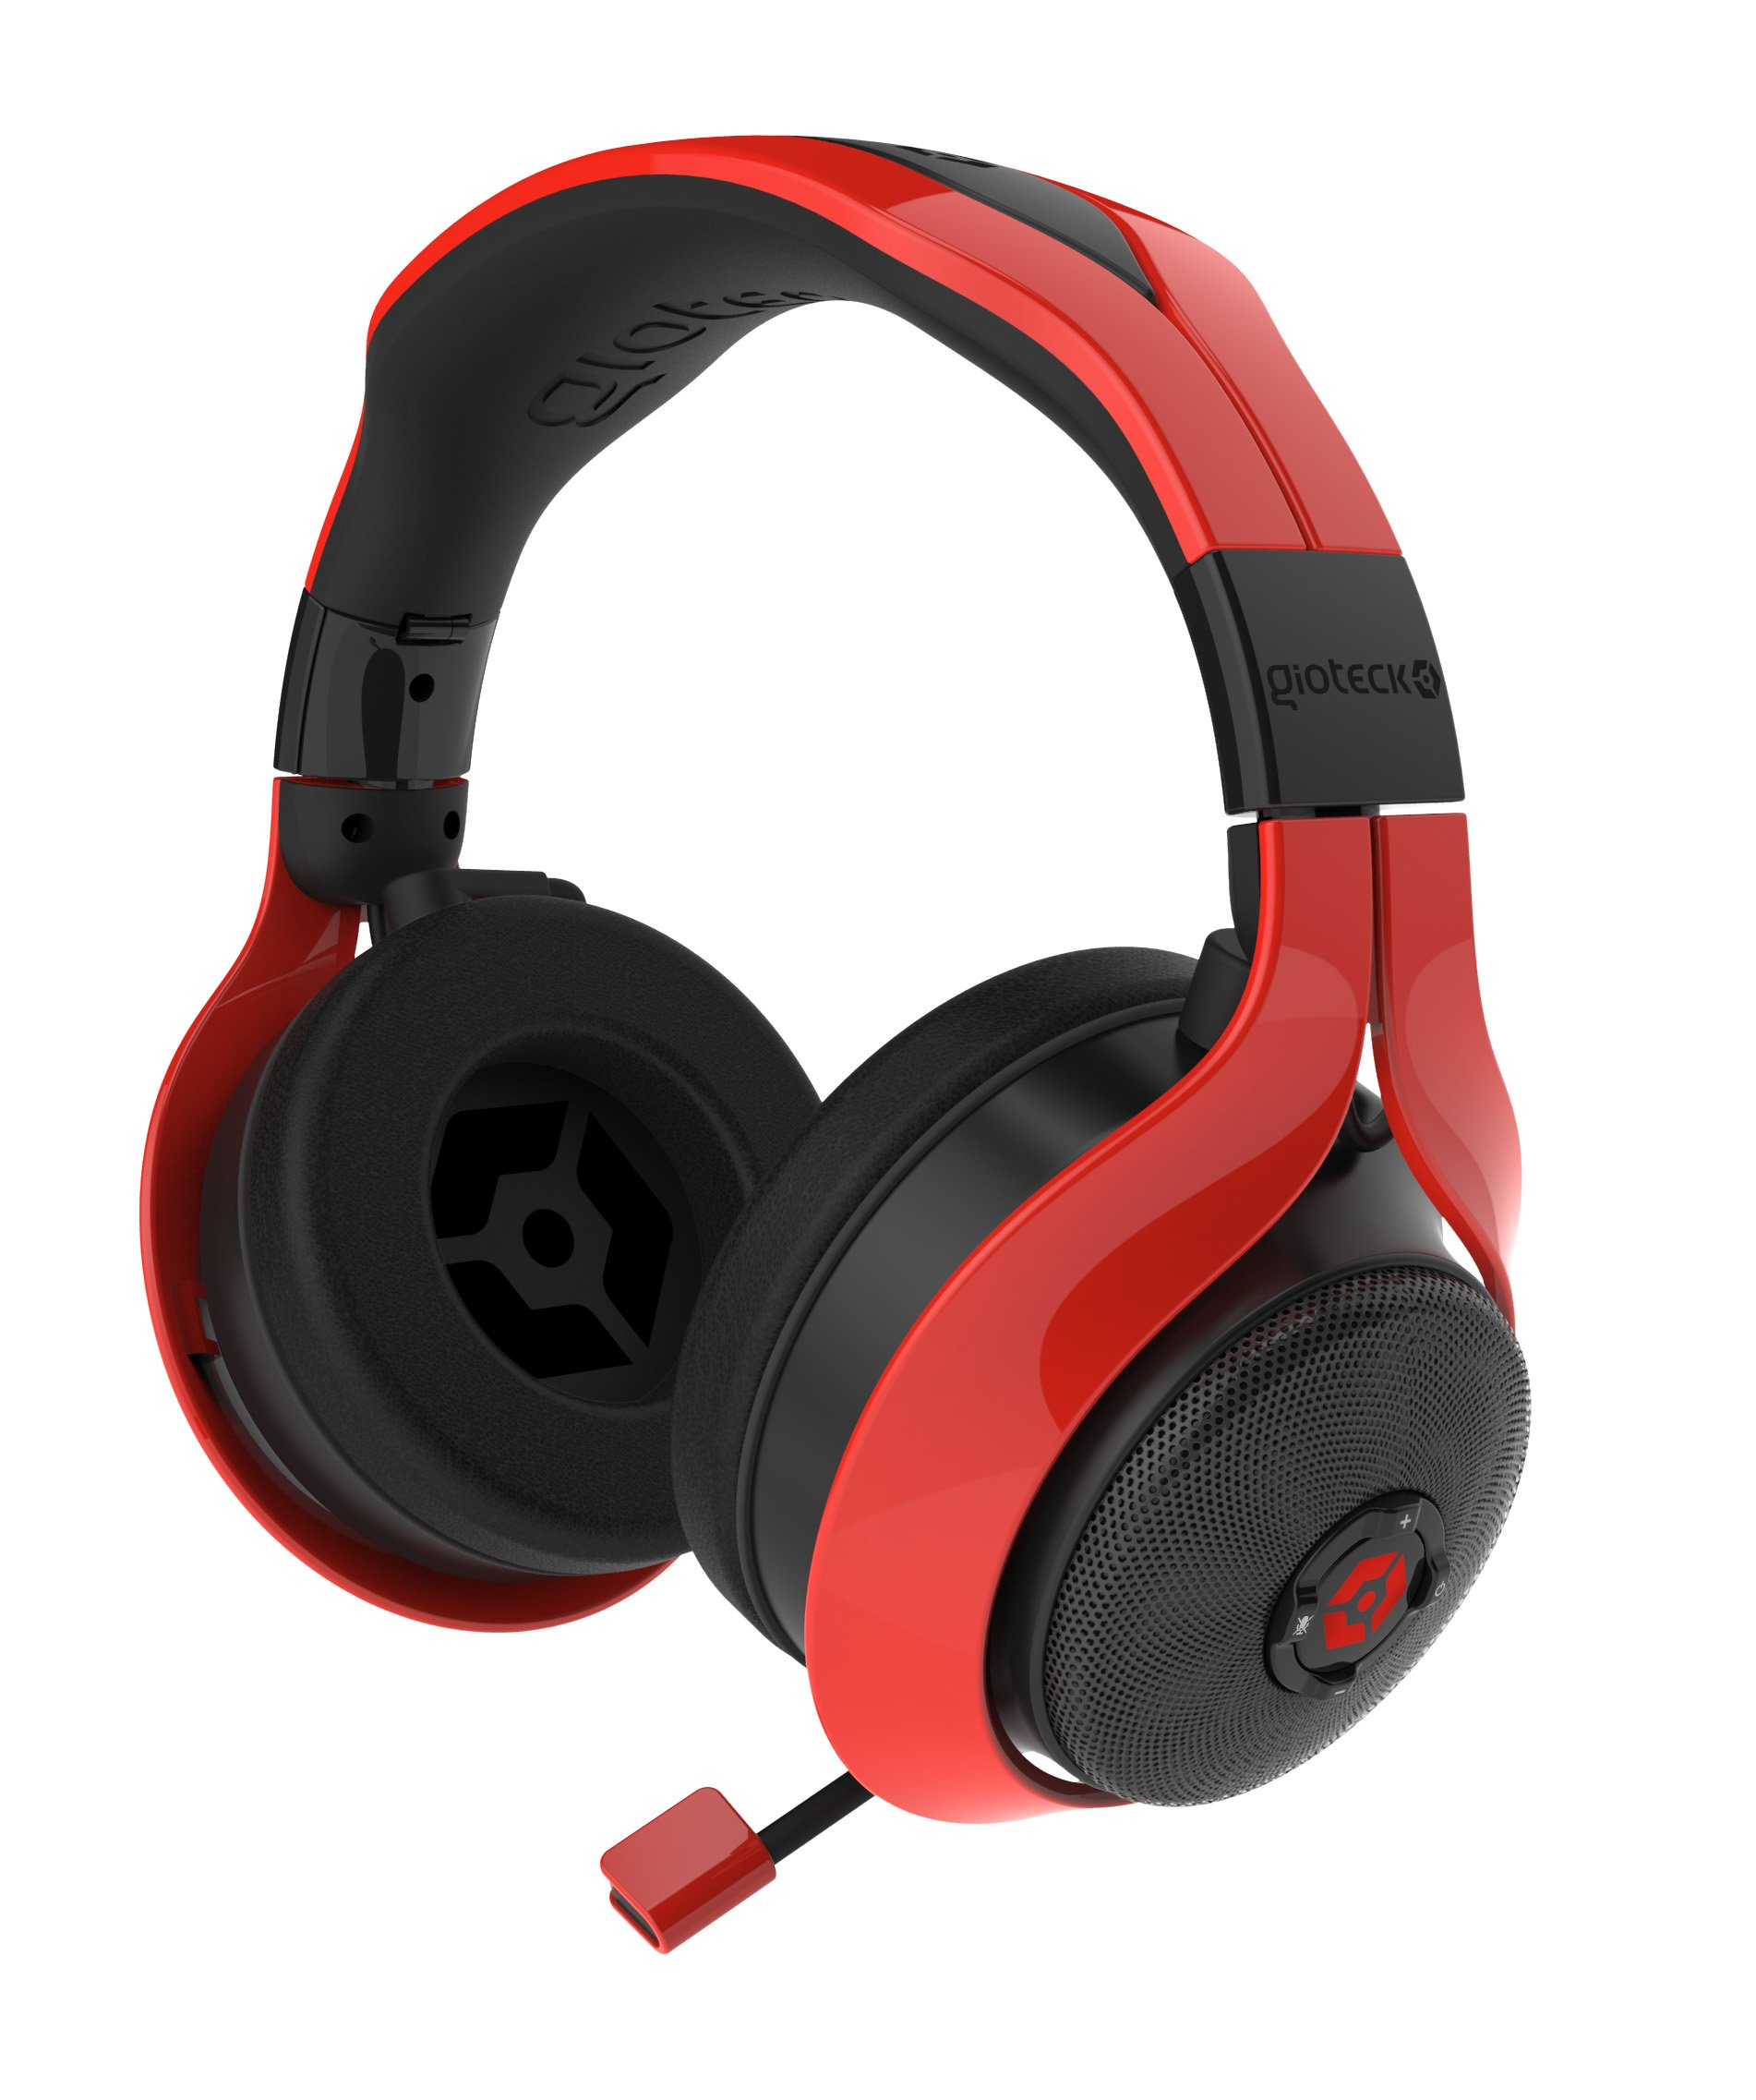 Gioteck FL-300 Wired Stereo Headset with Removable Bluetooth Speakers - PlayStation 4 - Red by Gioteck (Image #2)